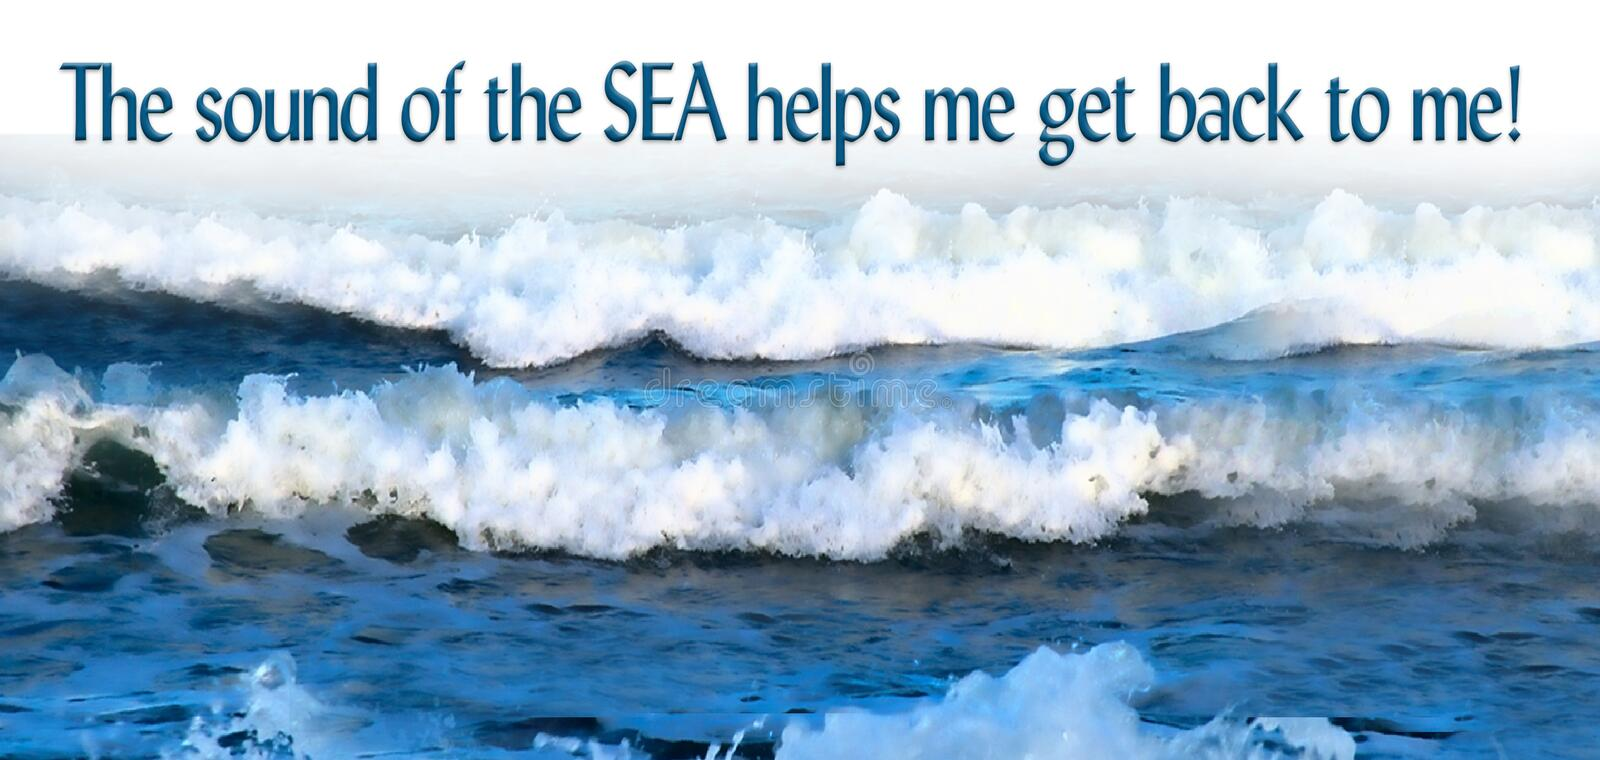 Marvelous Download Ocean Waves With Quote, Sounds Of The Sea Stock Illustration    Illustration Of Ripples